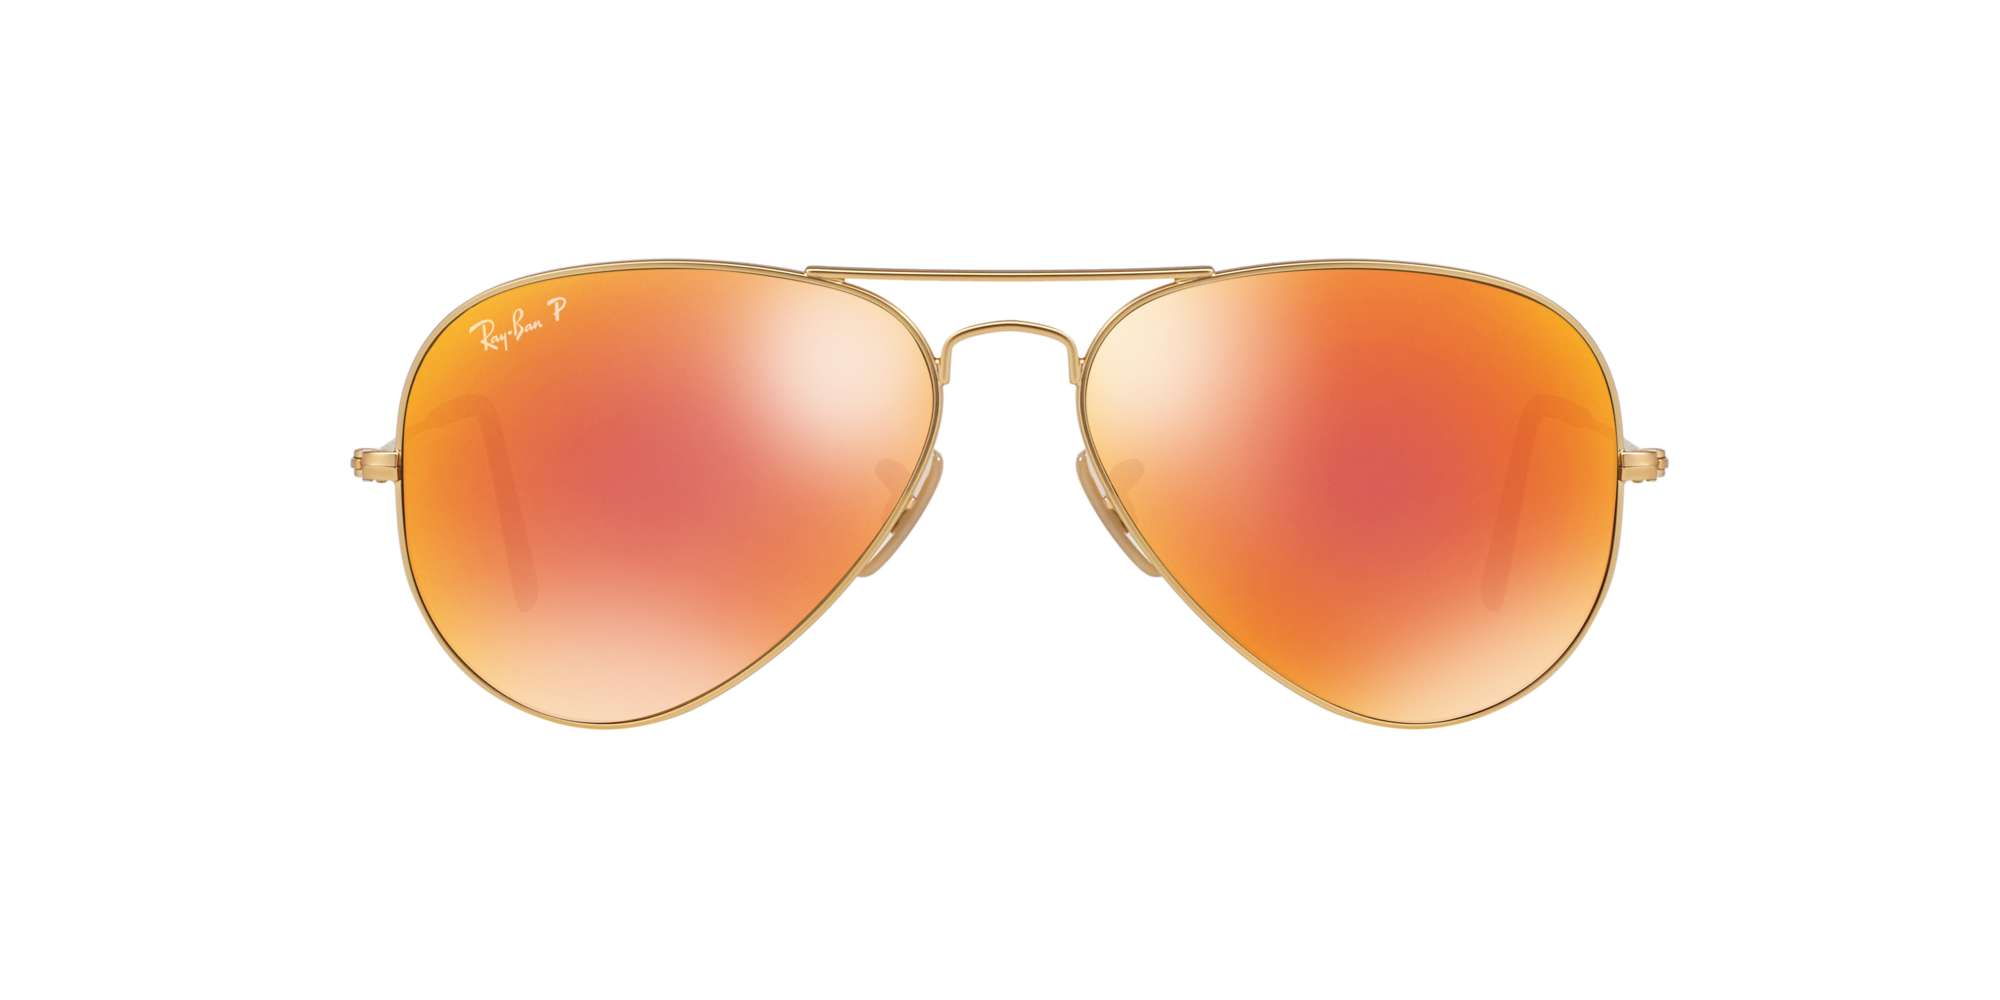 RAY-BAN AVIATOR CLASSIC RB 3025 112/4D -360